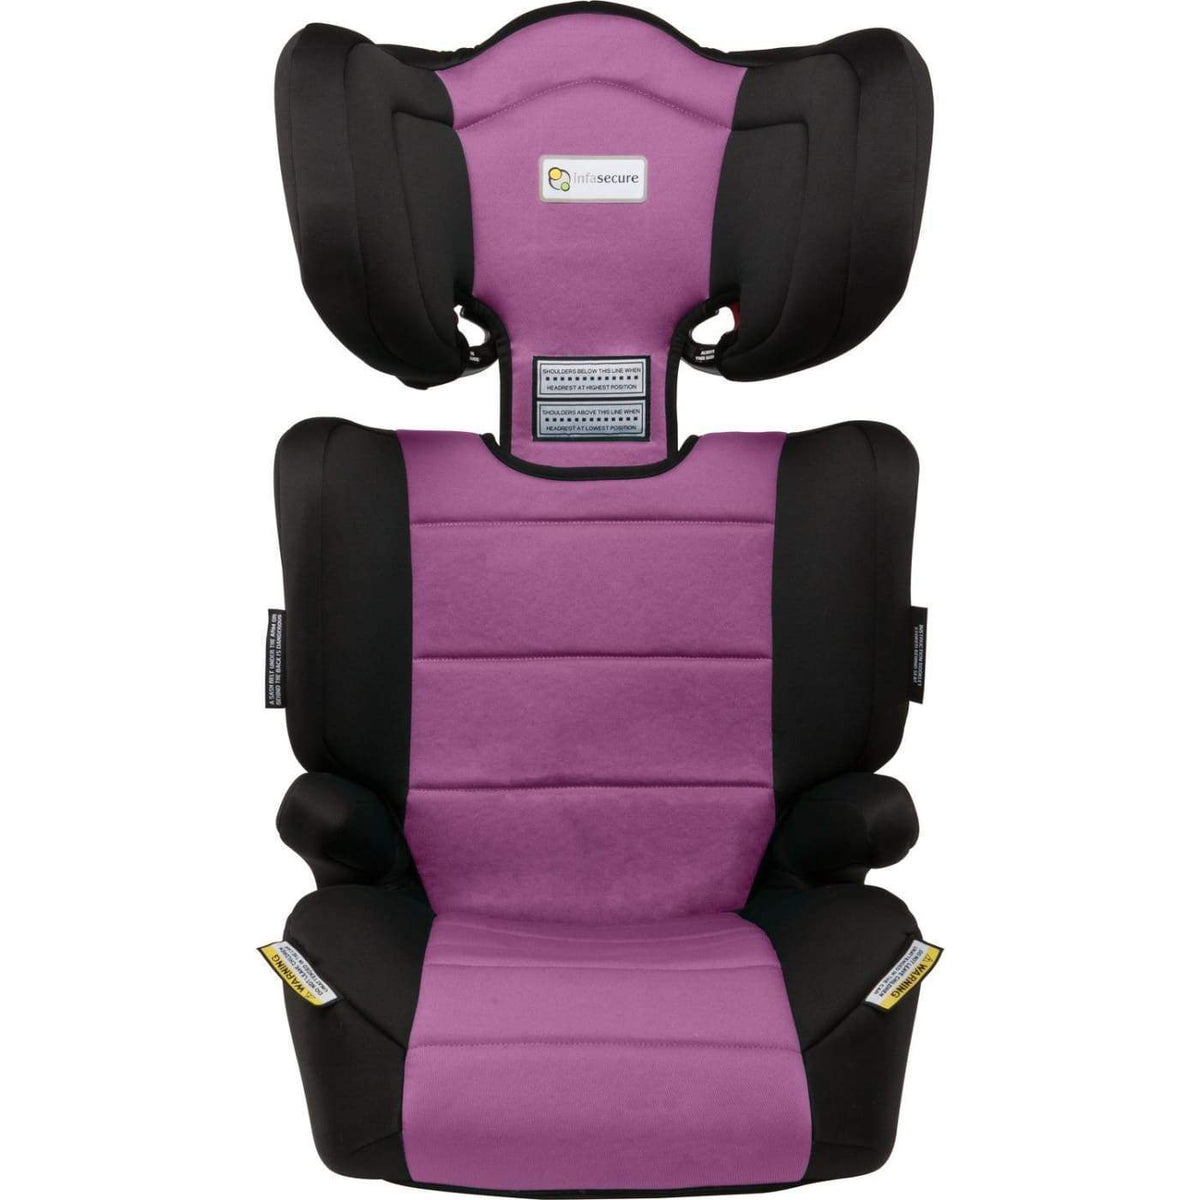 InfaSecure Astra Vario II Booster 4-8YR - Purple - CAR SEATS - BOOSTERS (4-8YR)